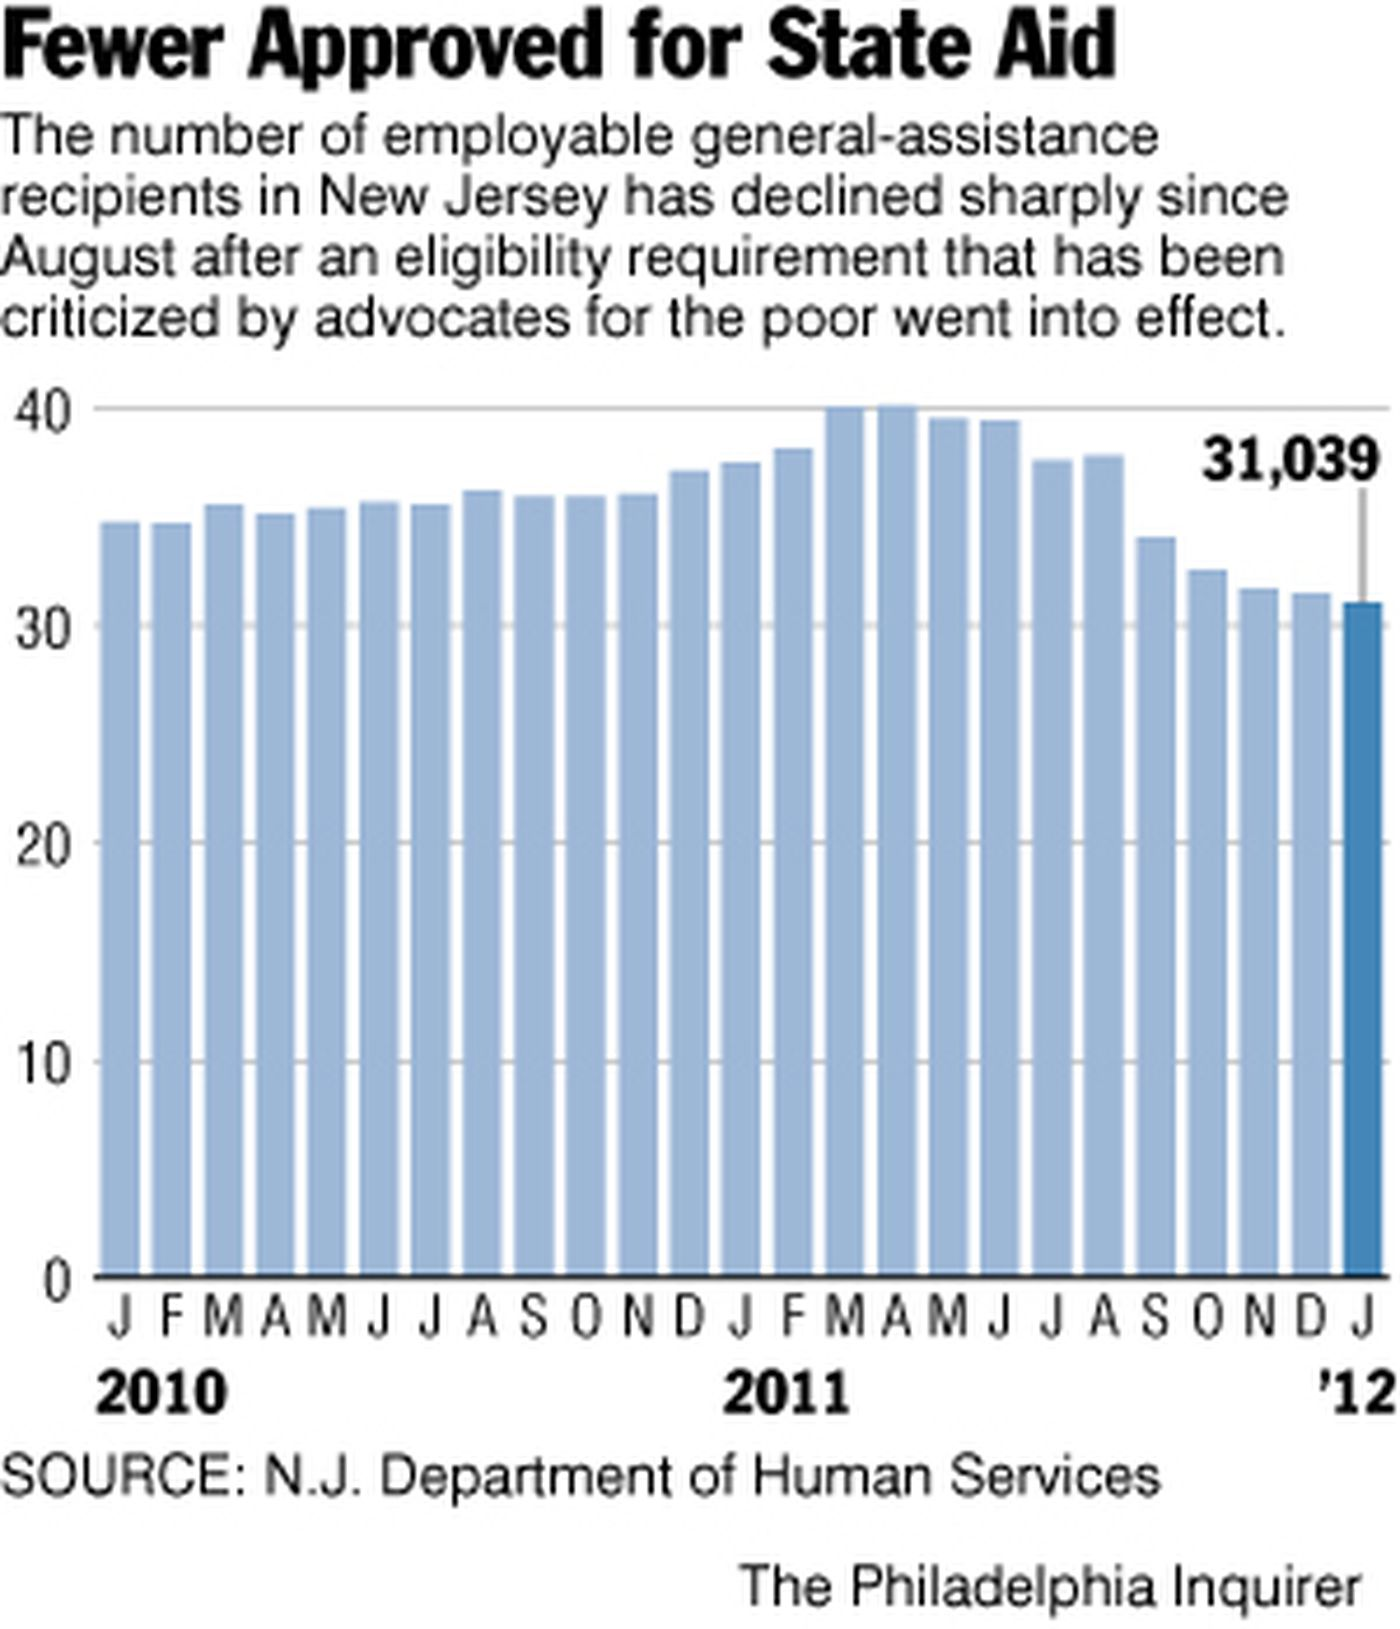 Policy change in New Jersey is resulting in fewer welfare recipients